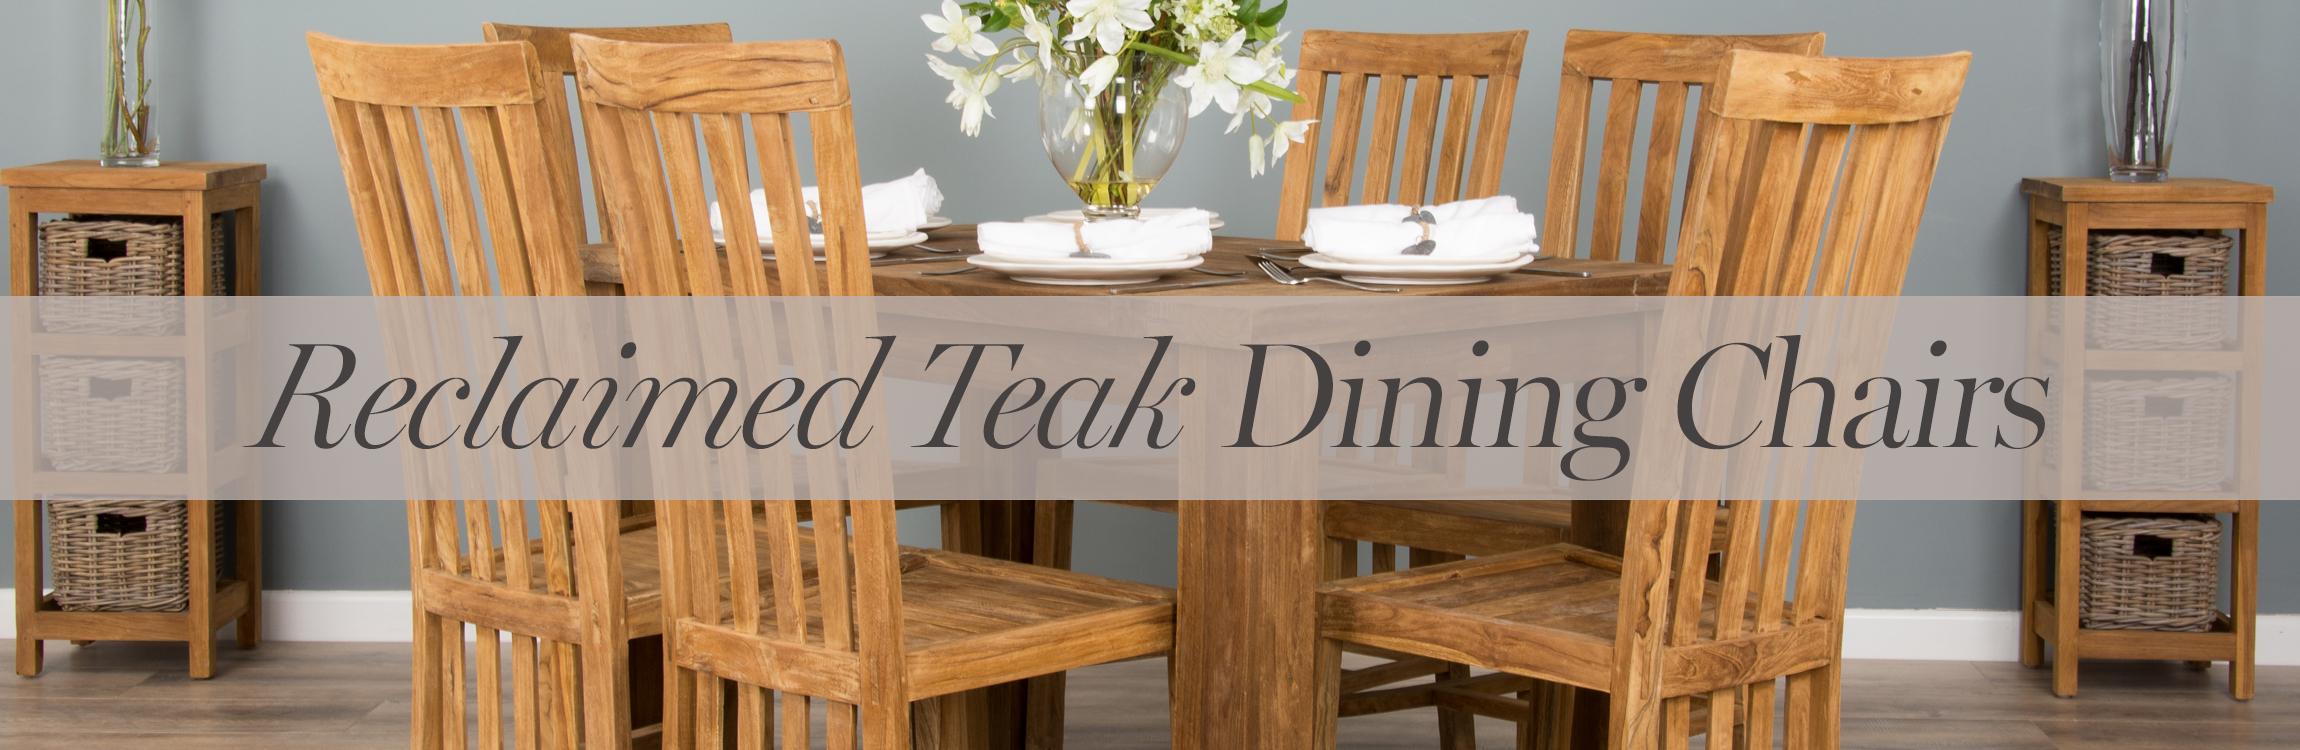 Reclaimed Teak Dining Chairs